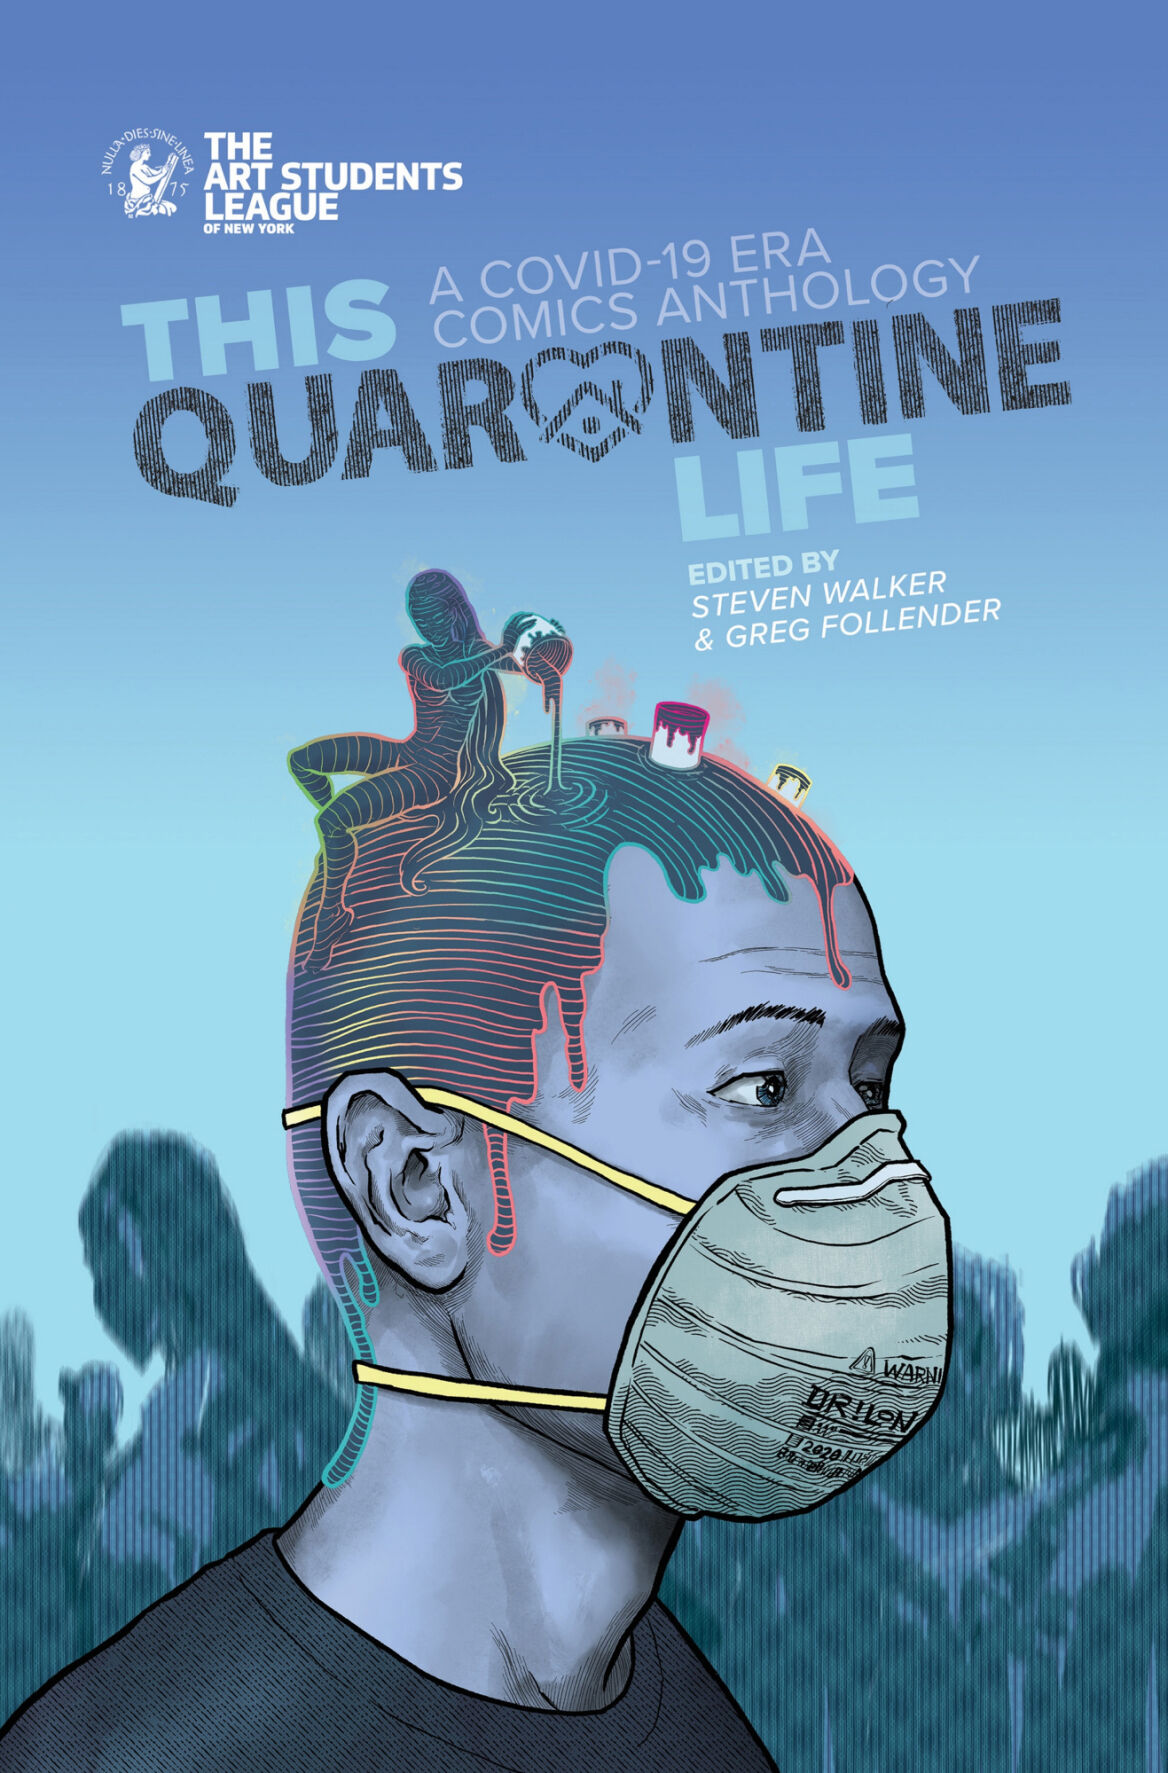 Young artists' comics capture quarantine experience